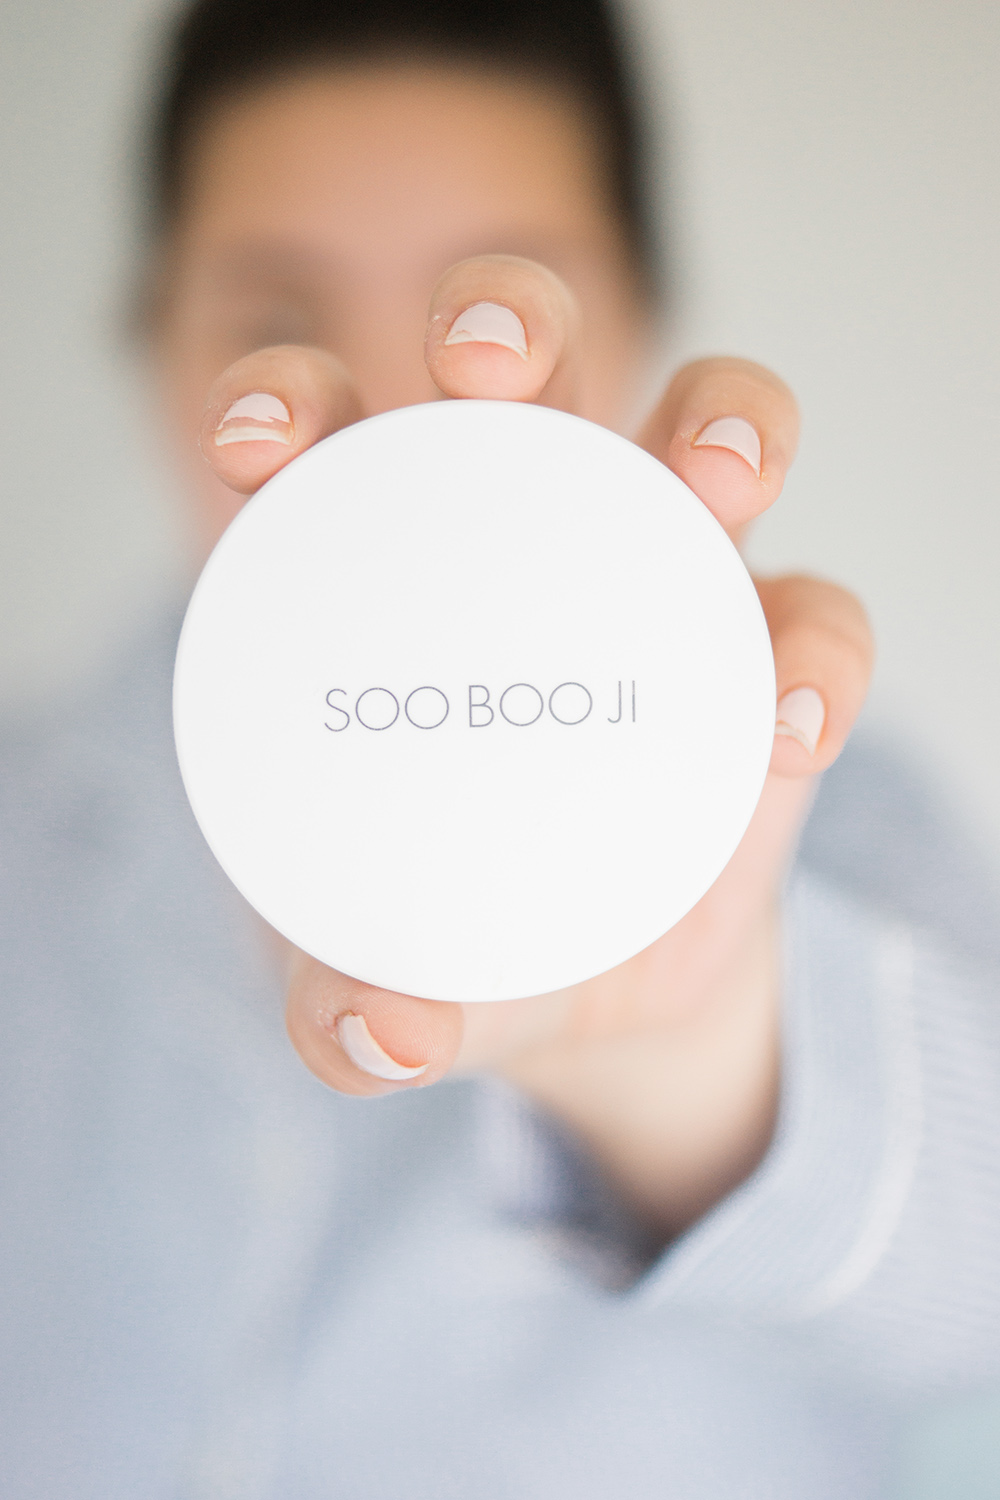 apieu-soo-boo-ji-cushion-review-korean-skincare-beauty-photography